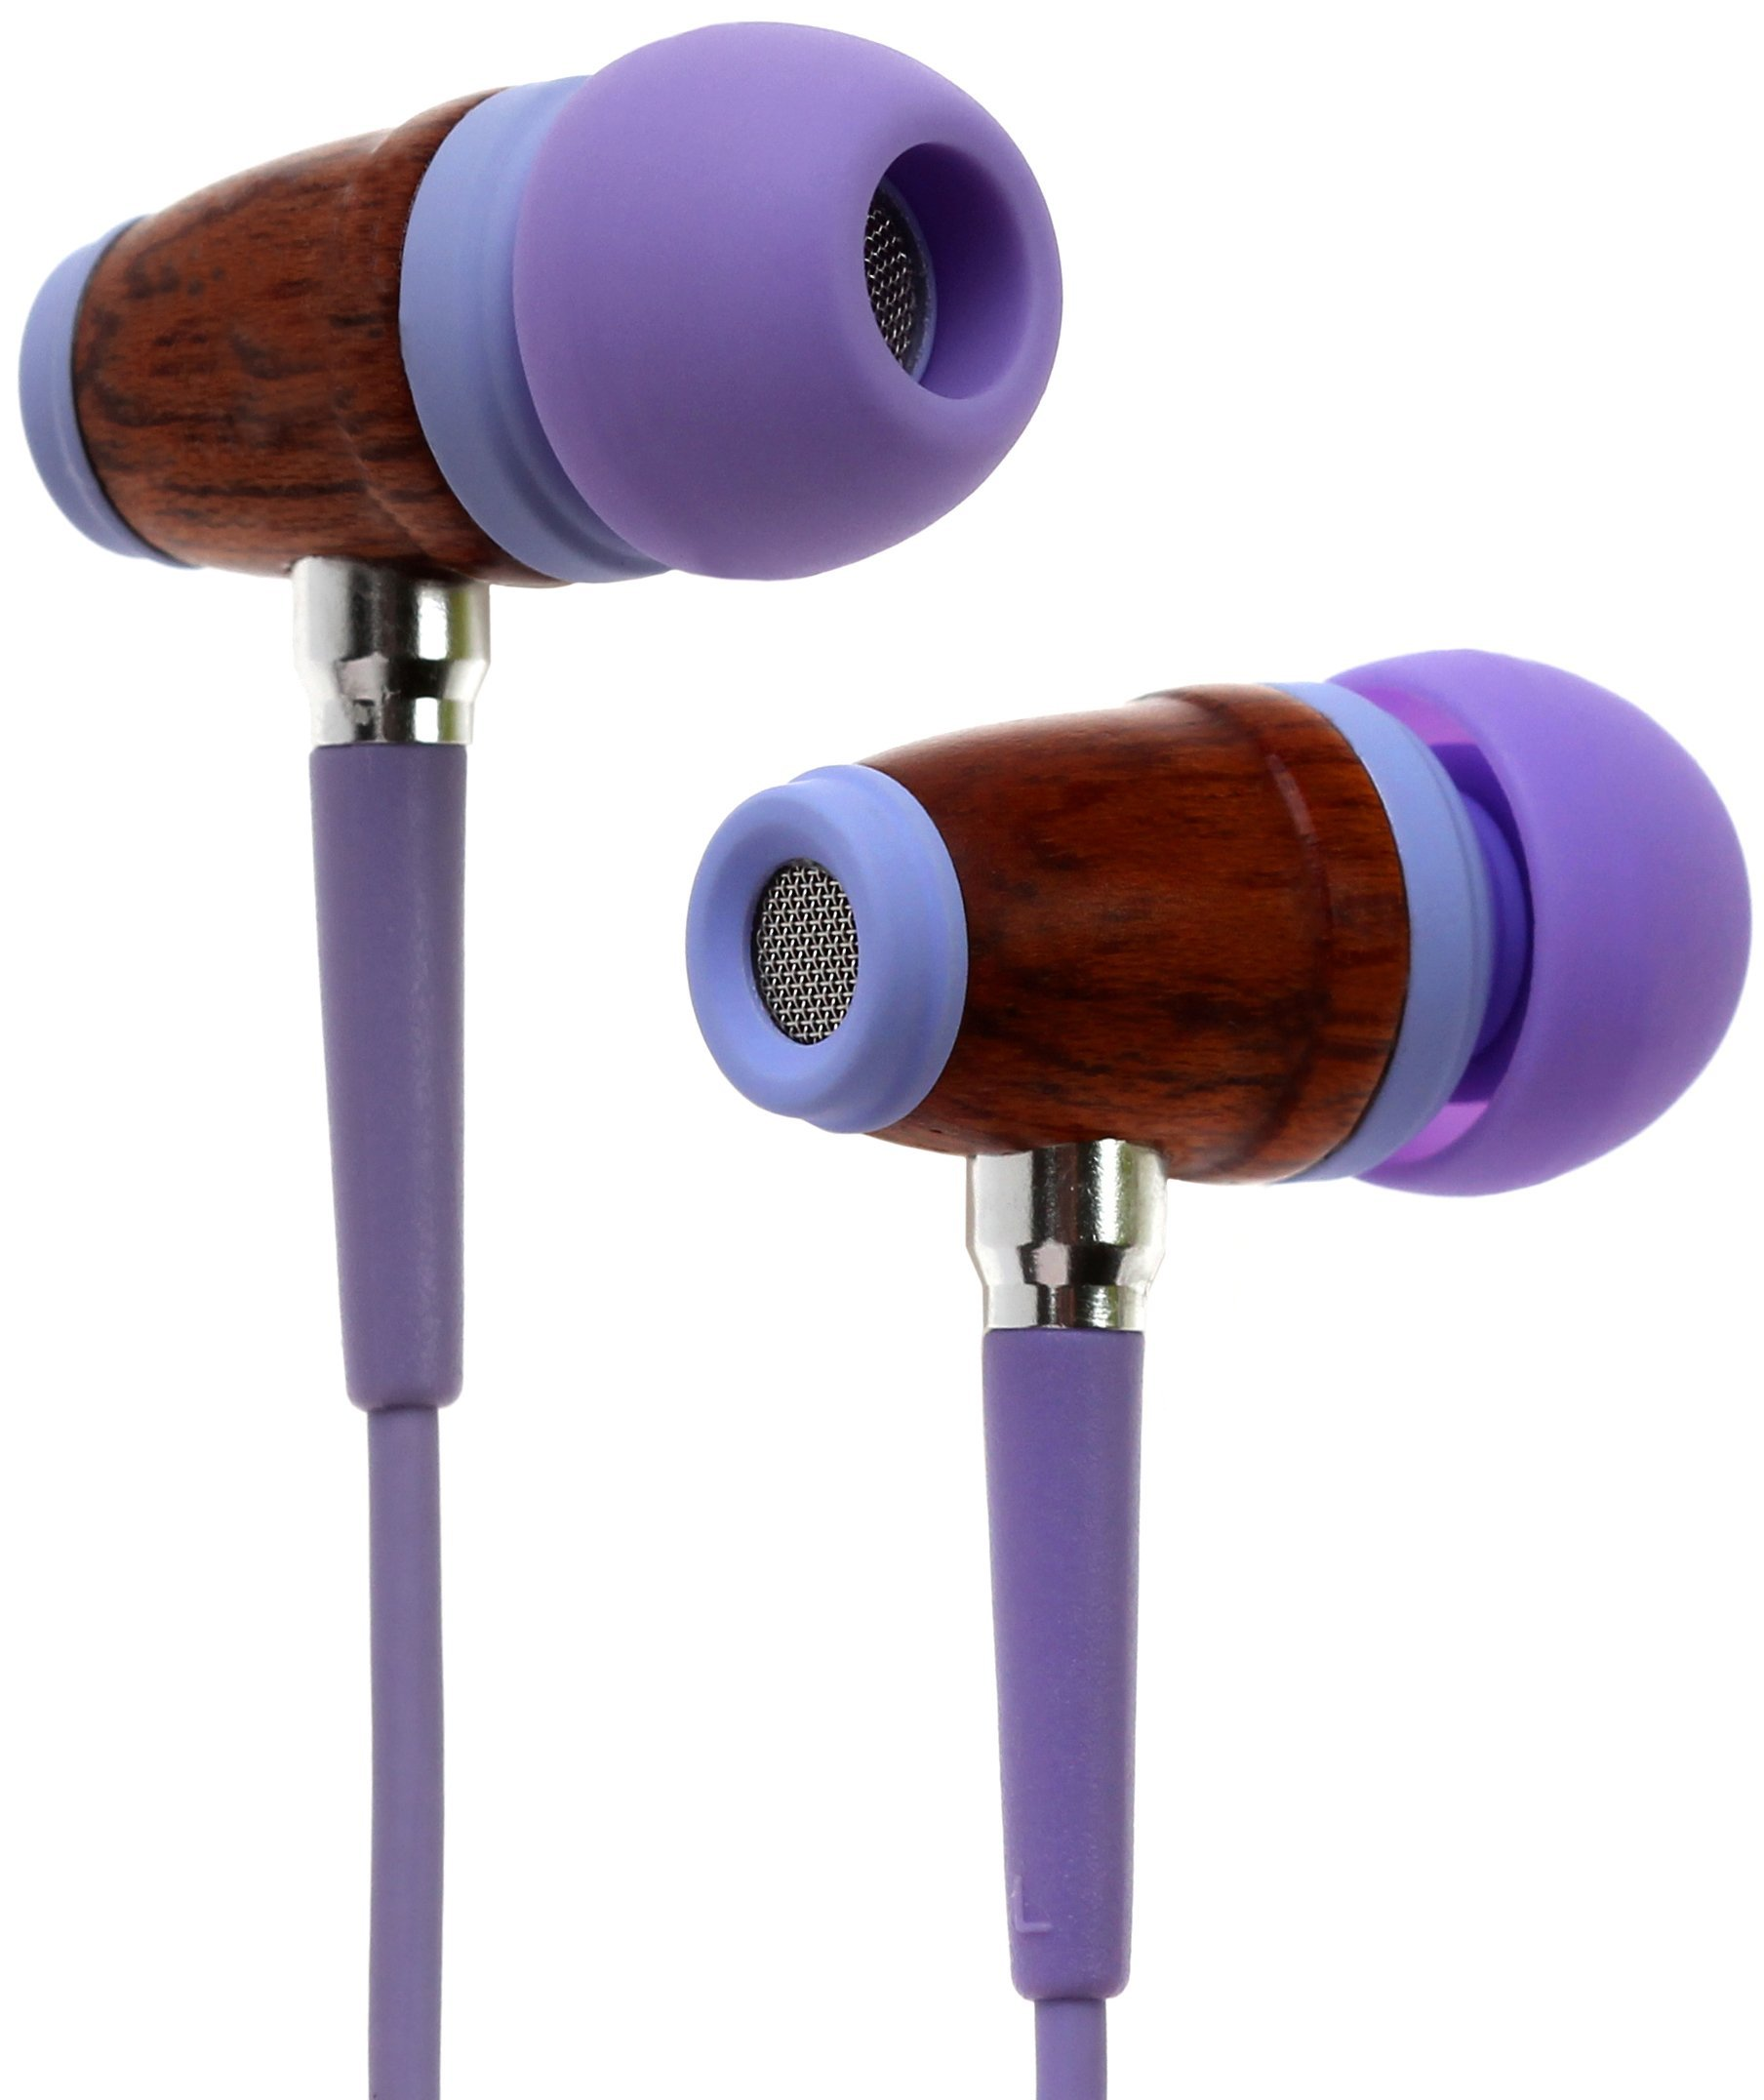 Symphonized Kids Volume Limited Premium Wood In-ear Noise-isolating Headphones|Earbuds|Earphones with Mic (LaLa Lavender)